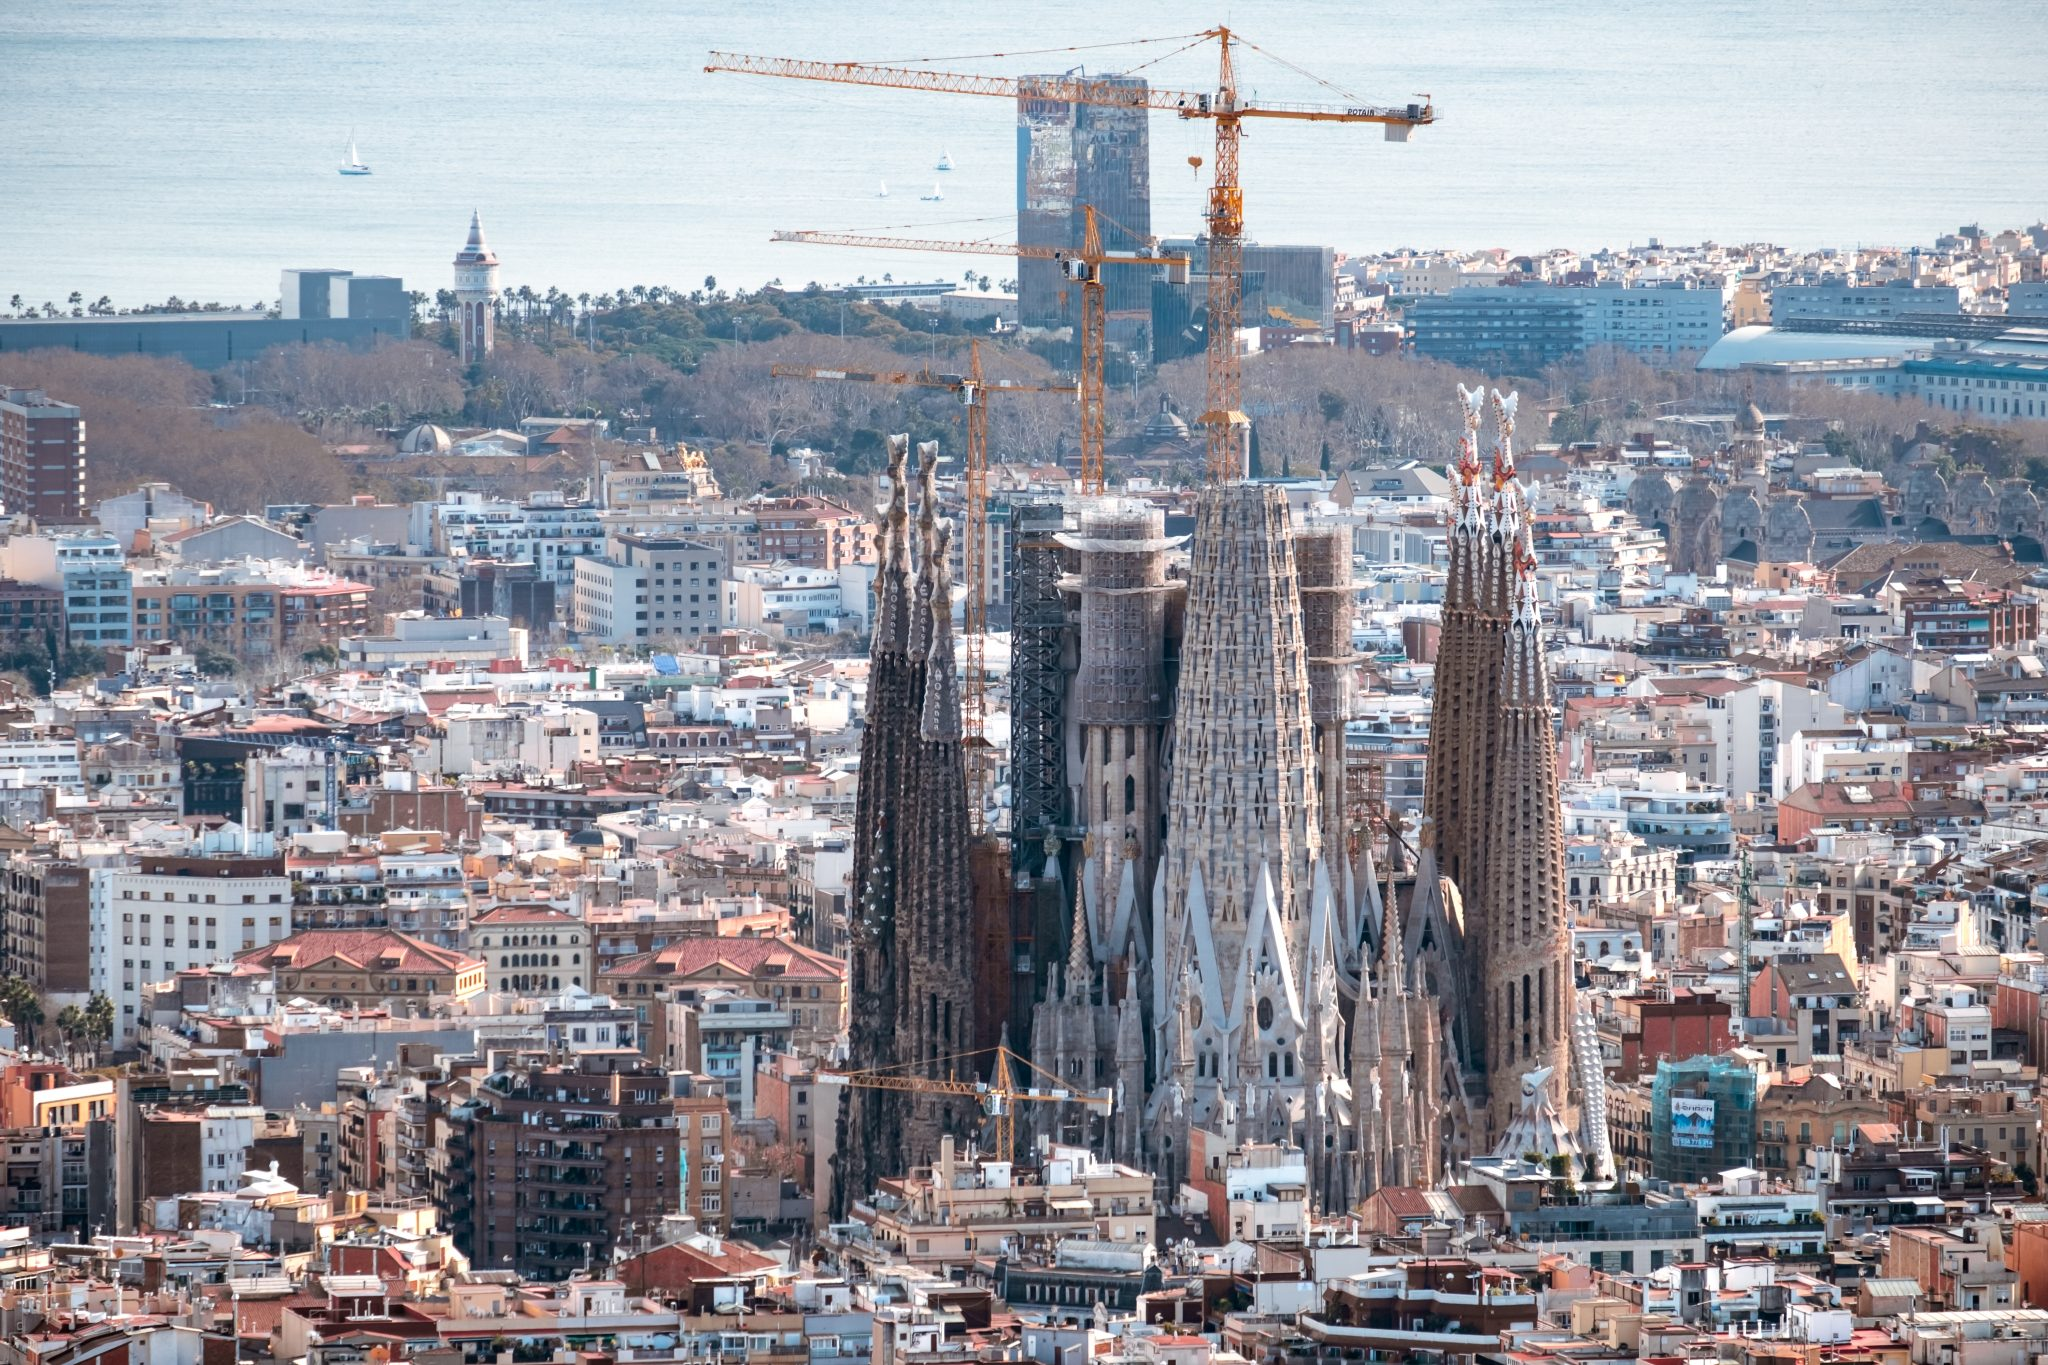 Construction of the Sagrada Familia photo by Jo Kassis